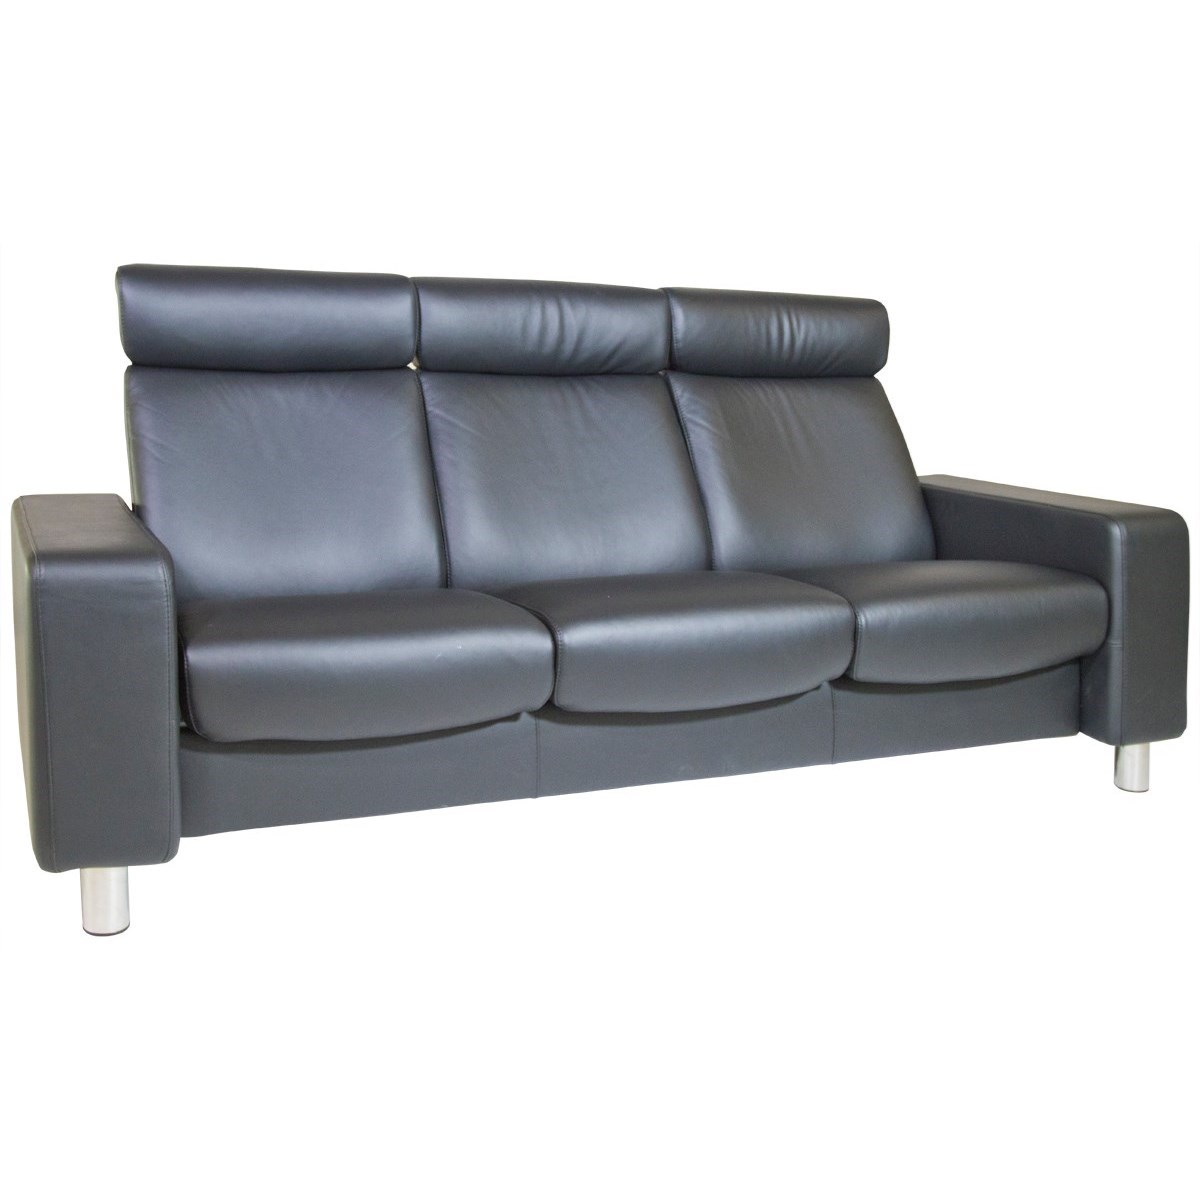 Stressless By Ekornes Stressless Pause 1417030 3 Seat High Back Sofa With Flat Track Arms Dunk